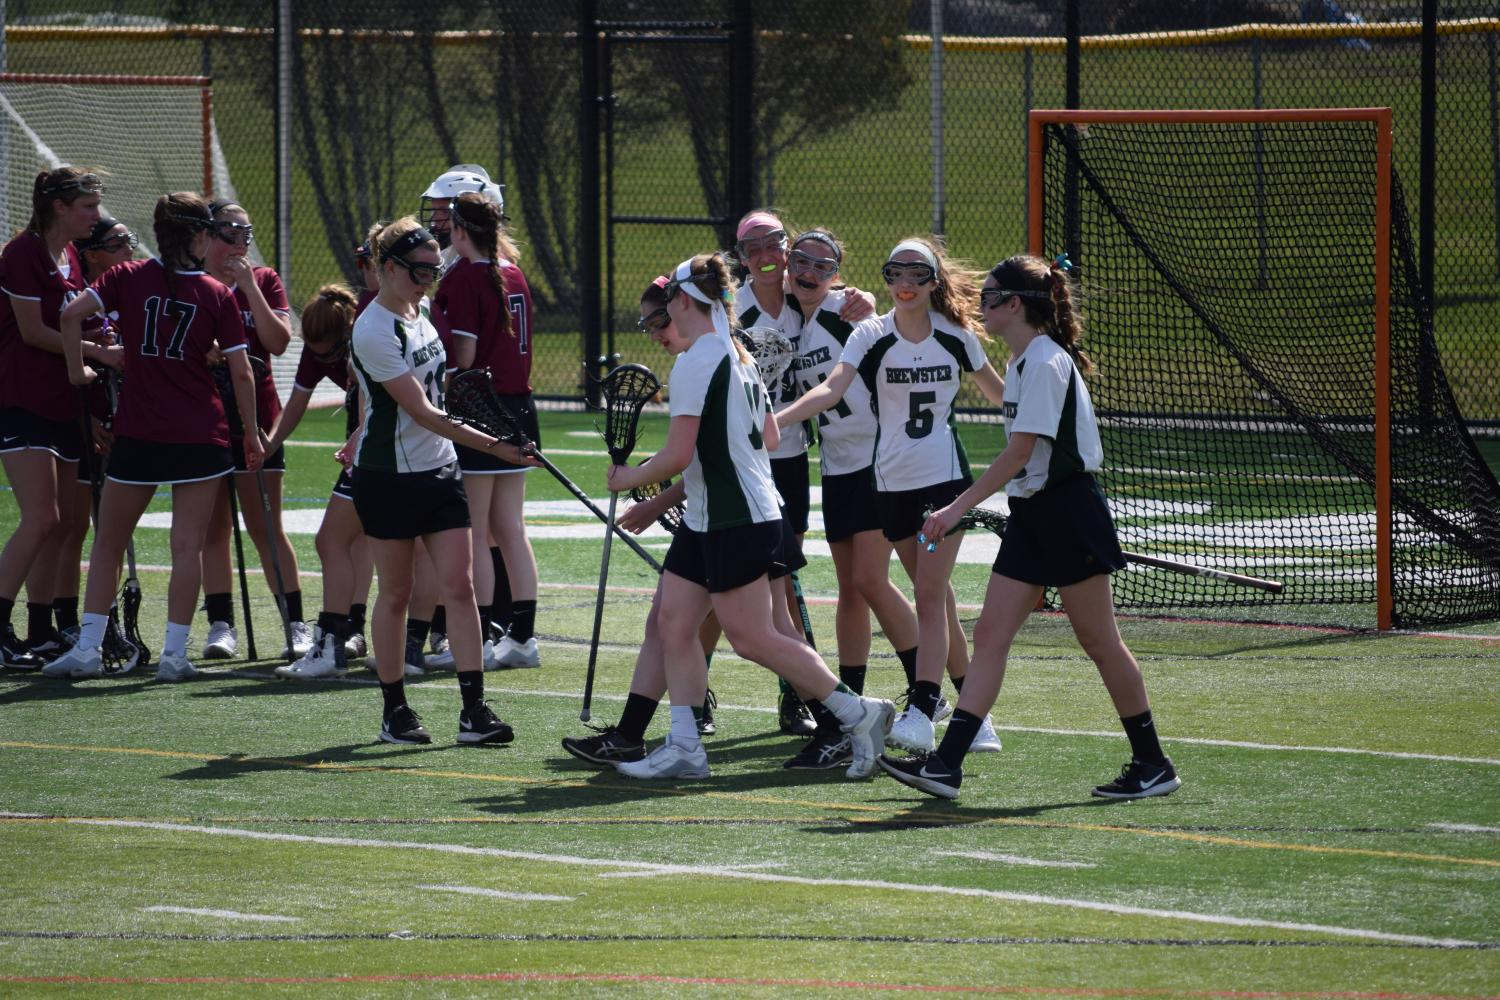 Our spring sports team captains report  from the field!